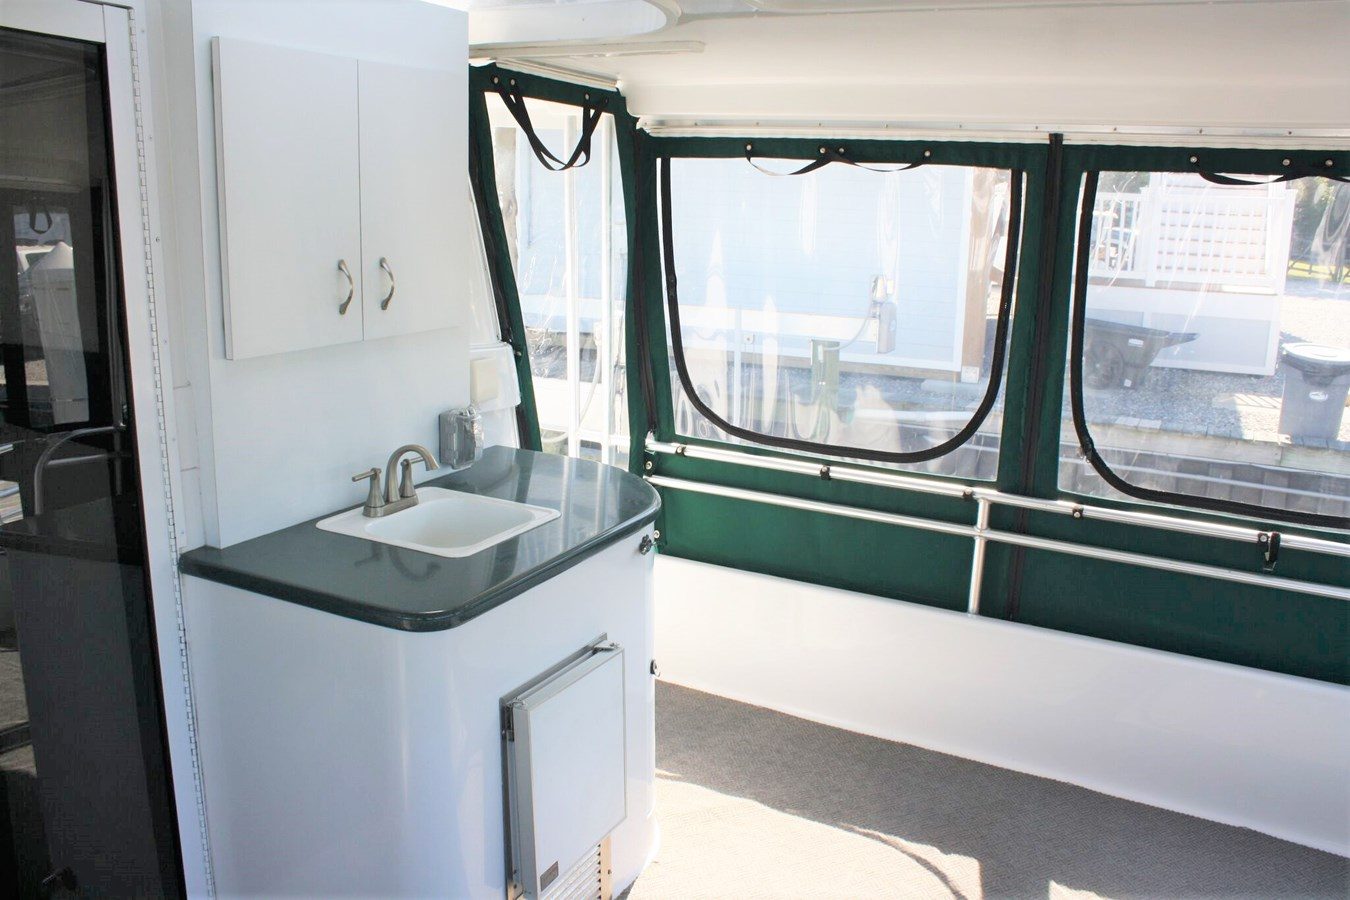 7 - 47 MAINSHIP For Sale